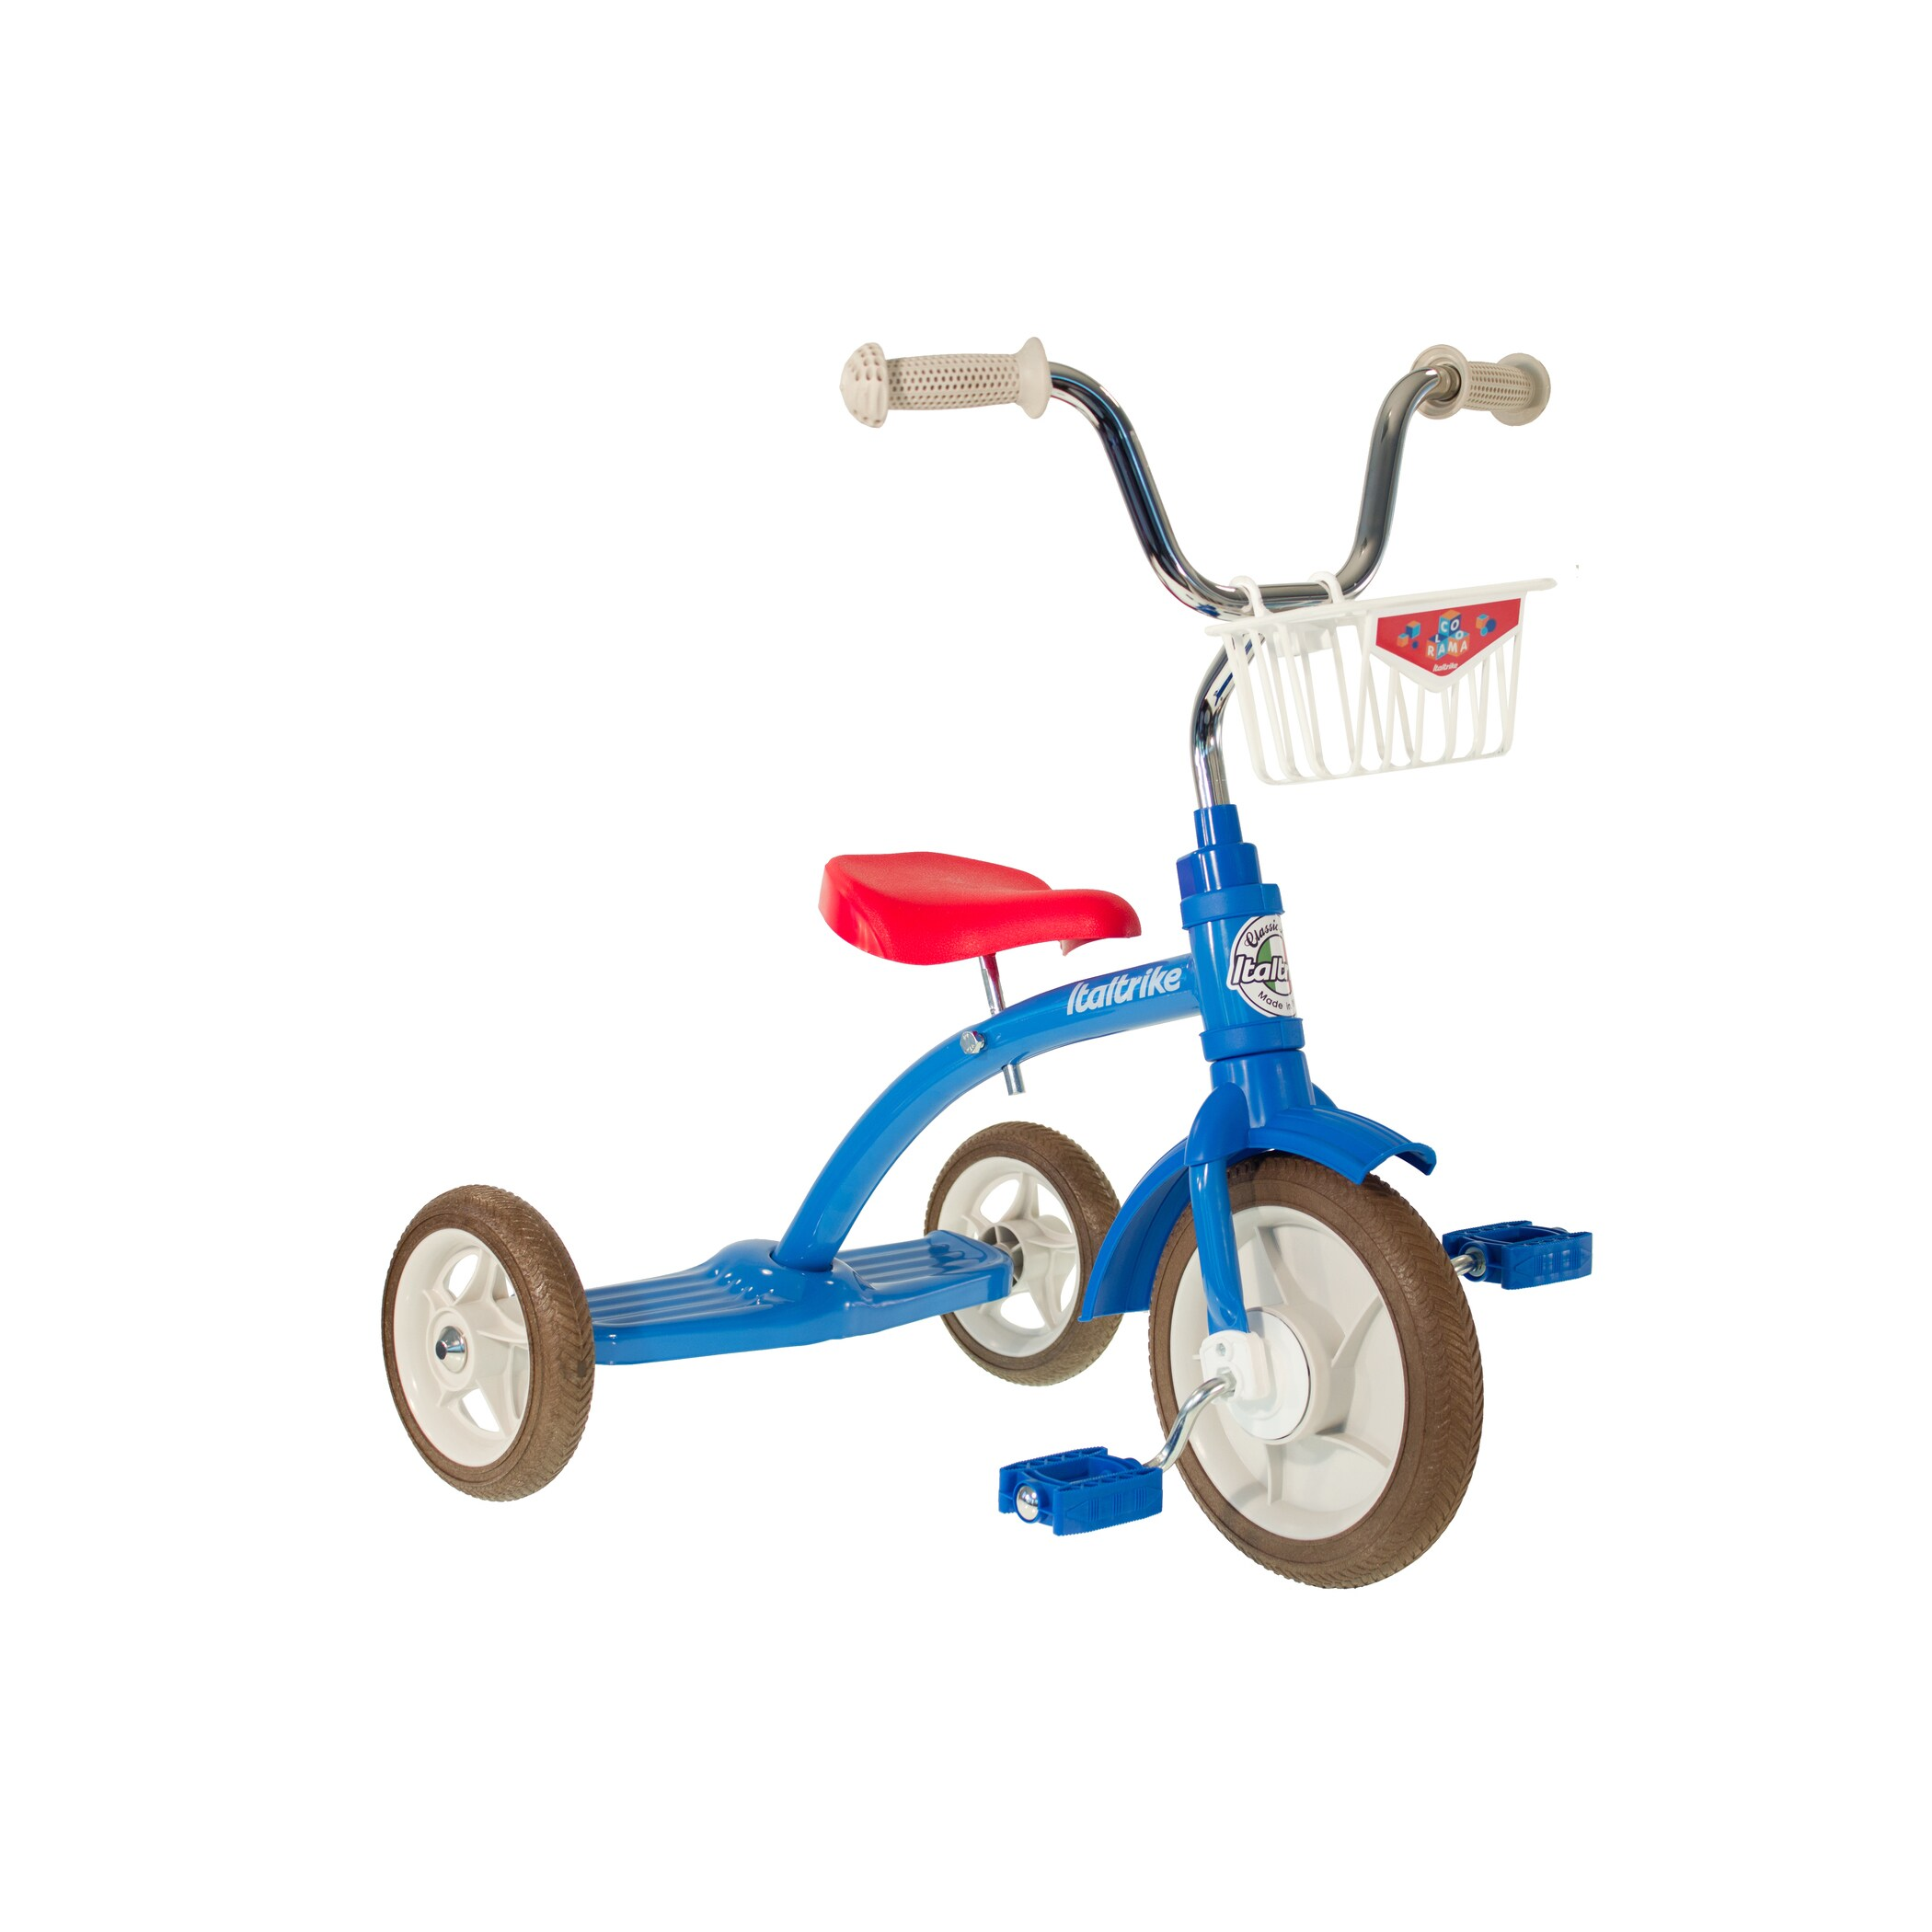 Italtrike Super Lucy Colorama Blue Tricycle (Blue)